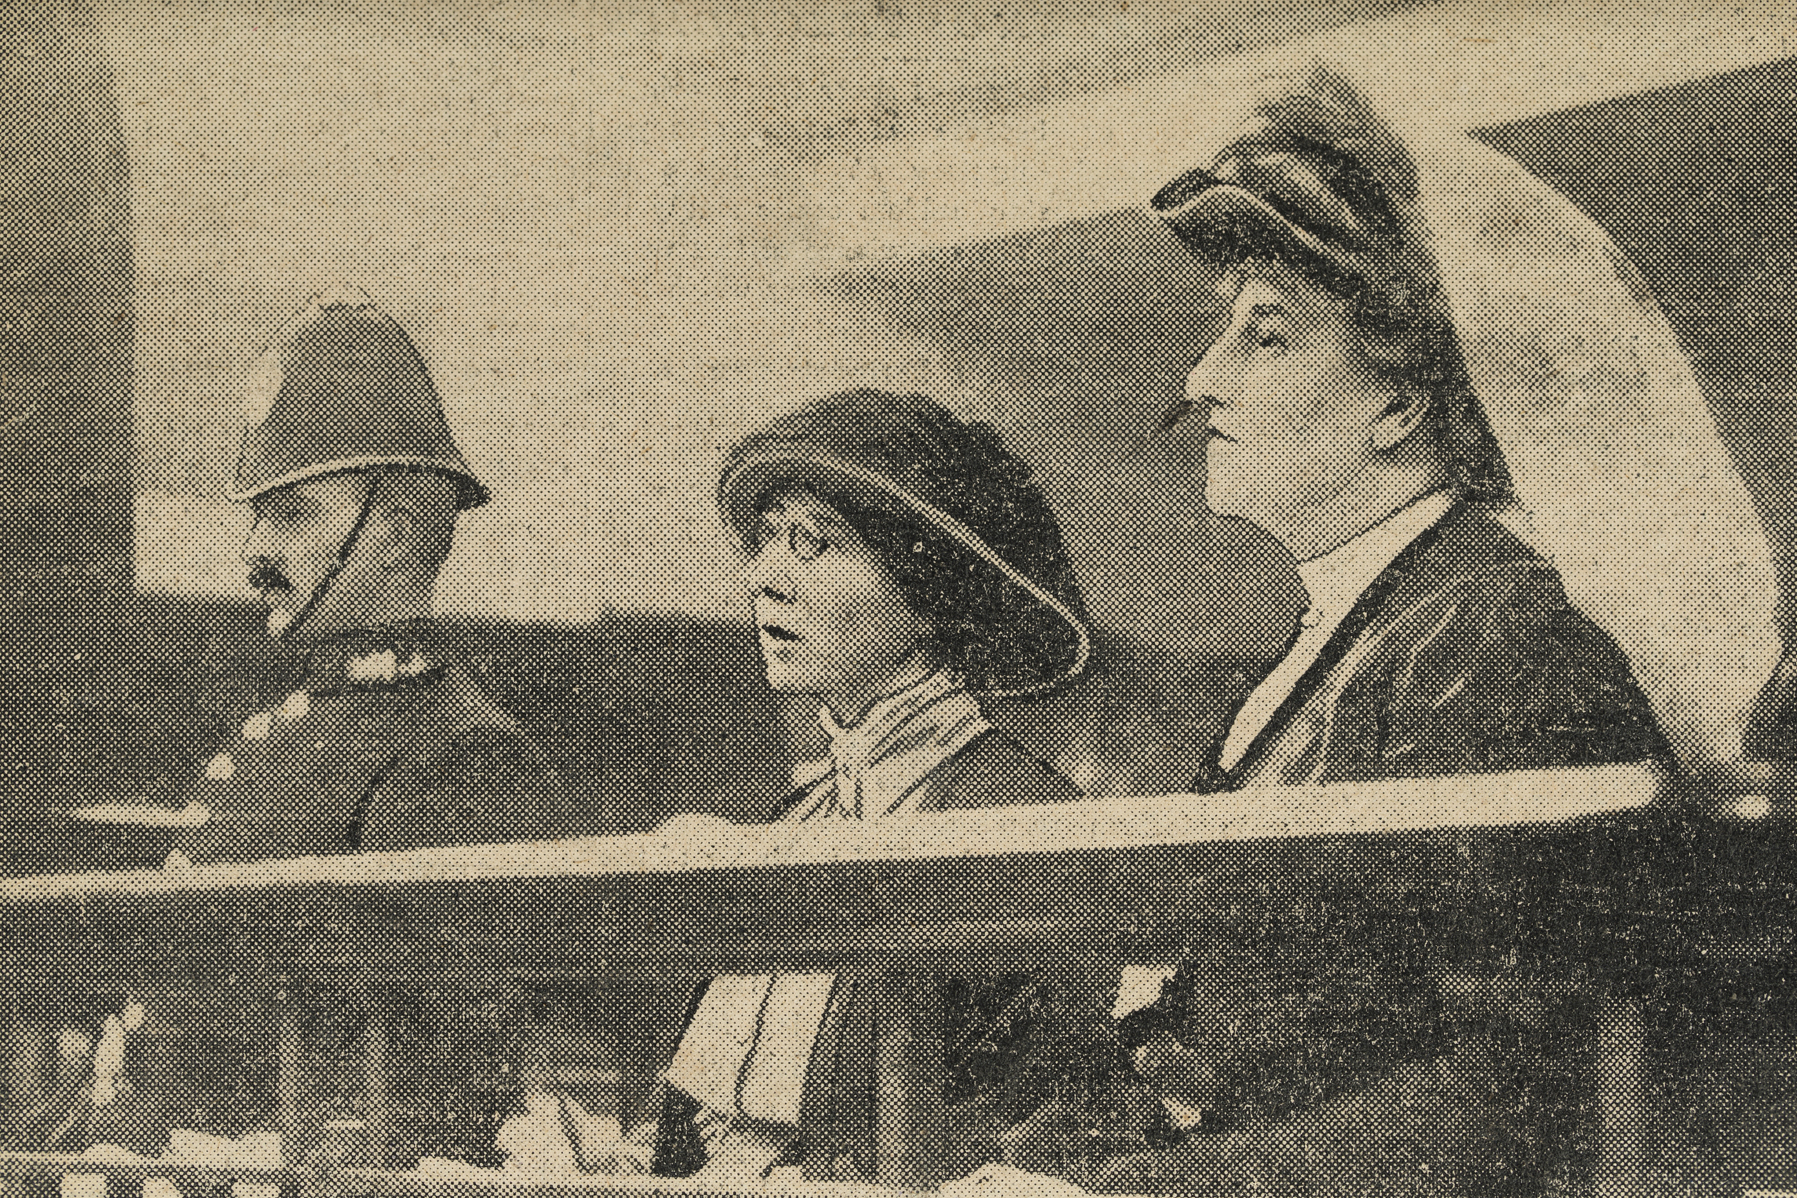 Photograph of Ethel Moorhead and Dorothea Smith in court. At the far left is a policeman, in the middle is Moorhead and at the far right is Smith.